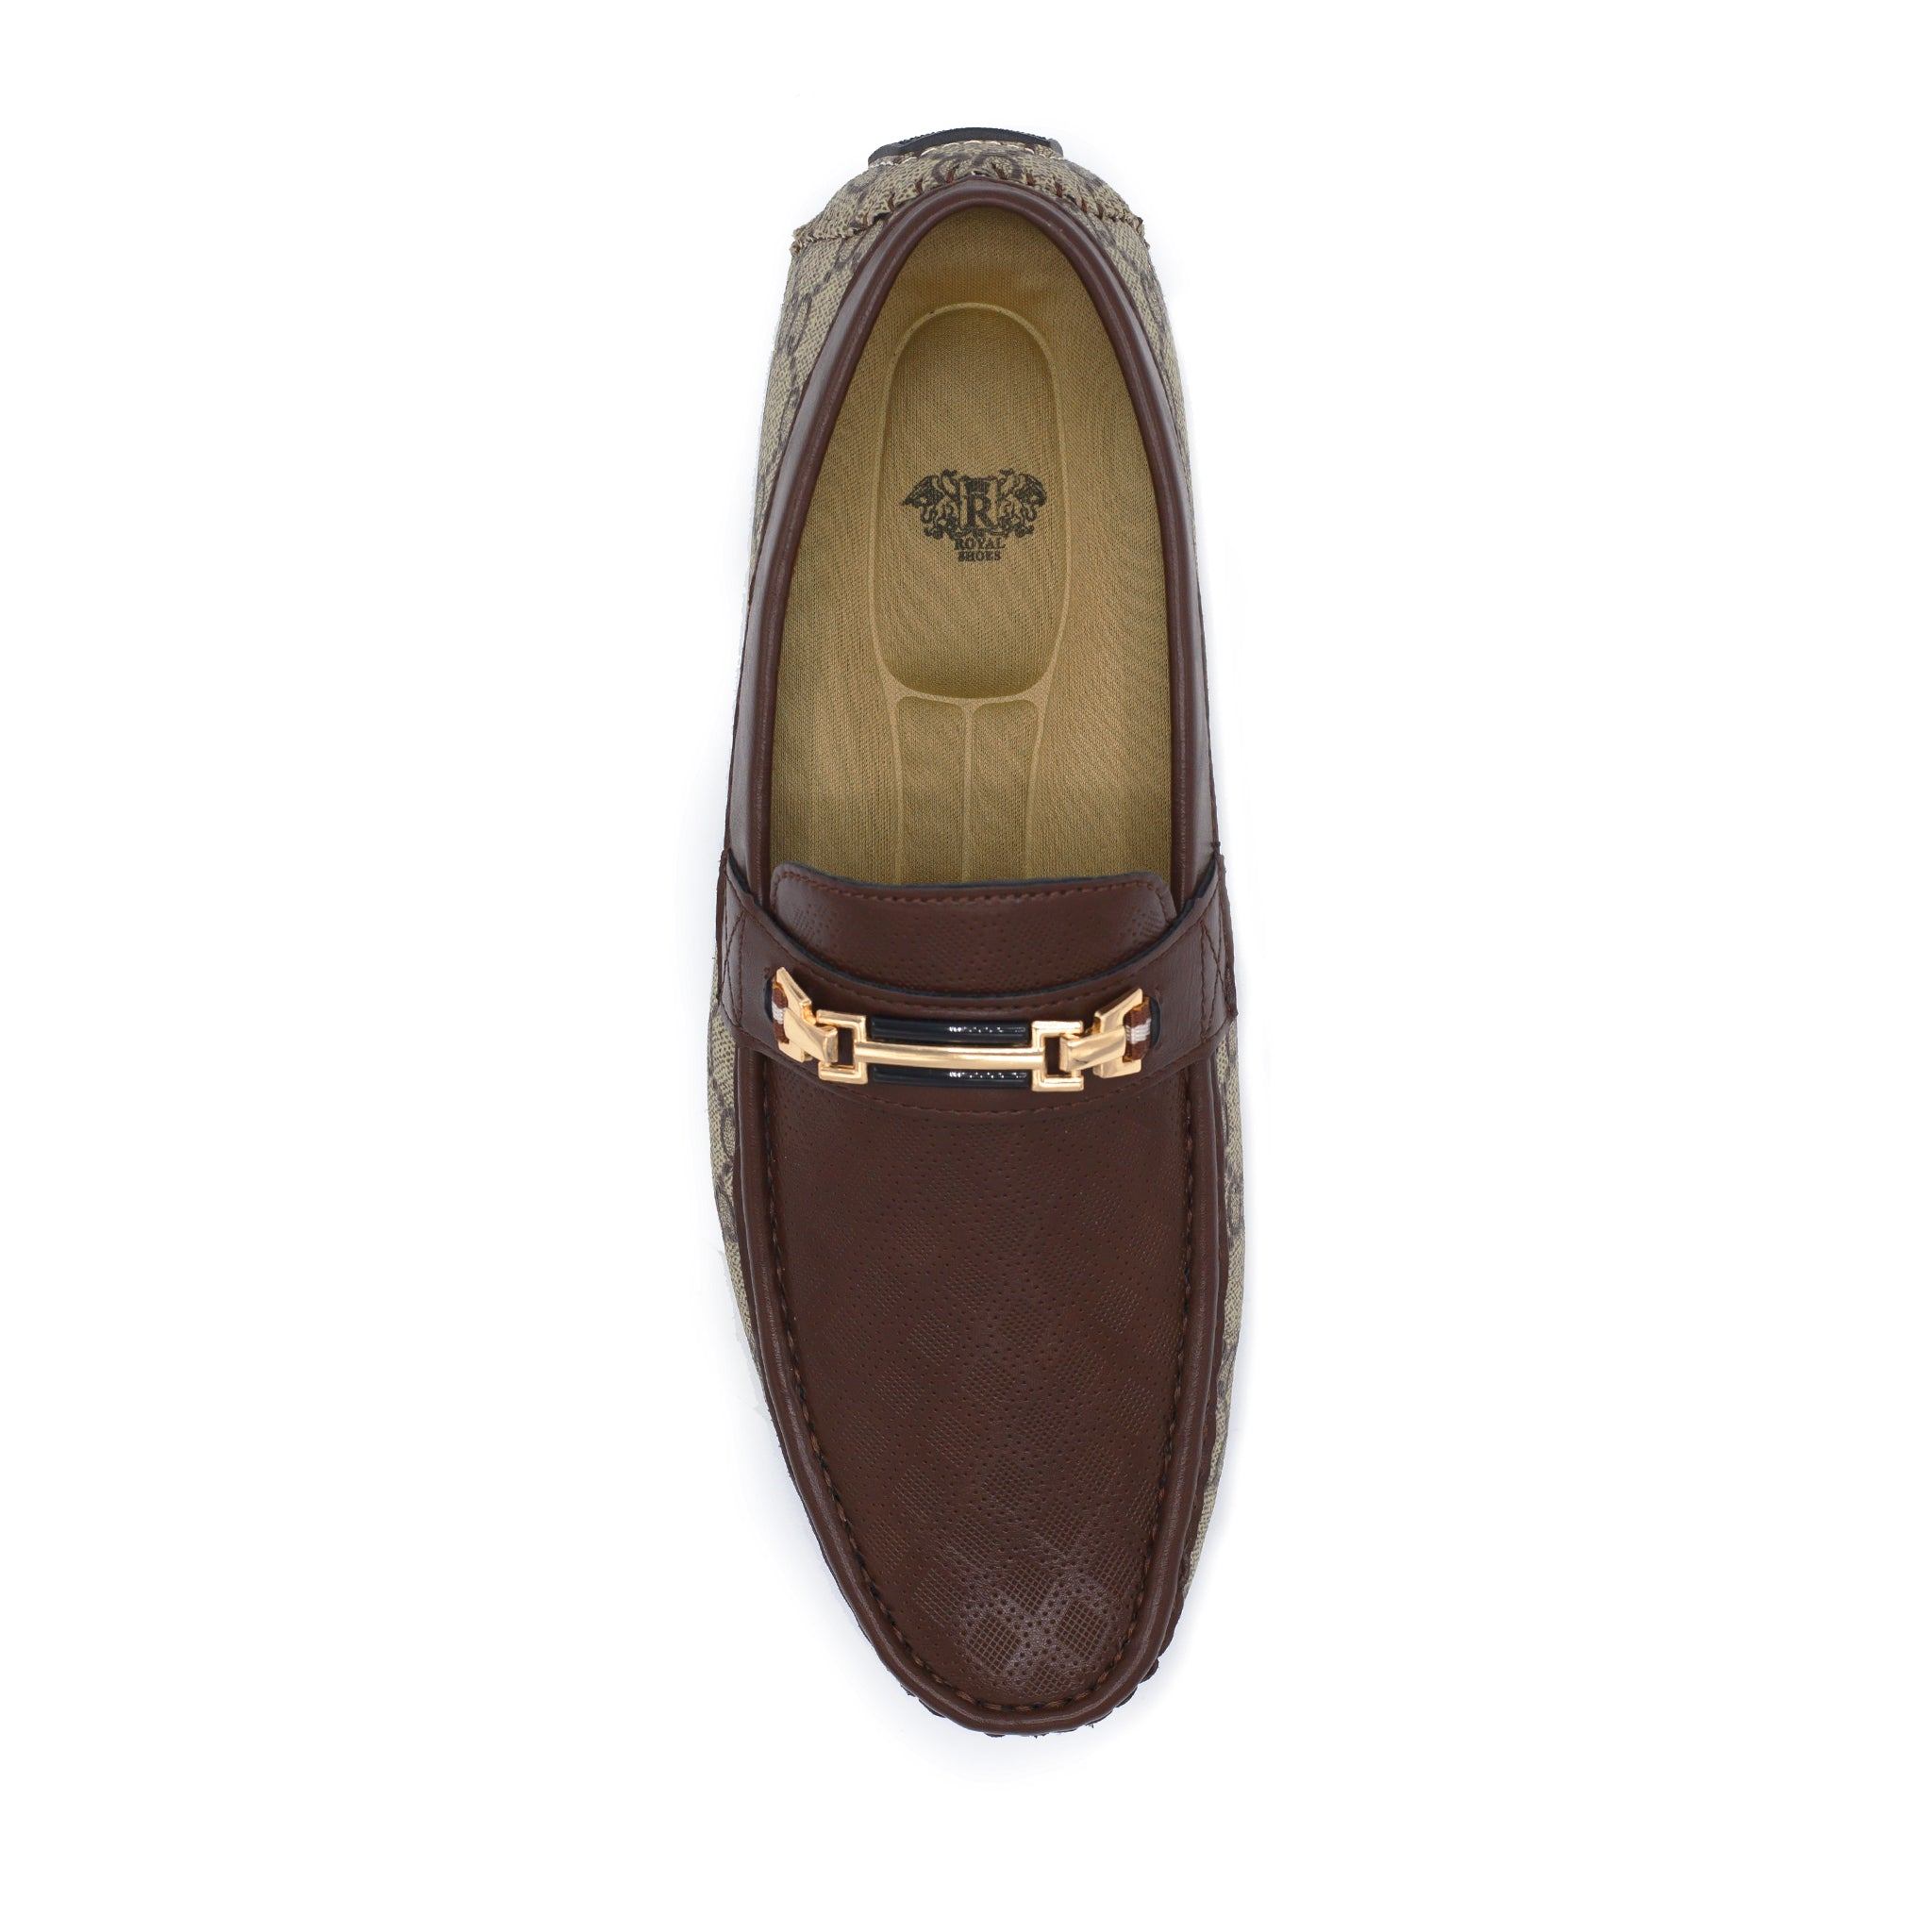 ROYAL CASUAL SHOES / 2-TONE BROWN